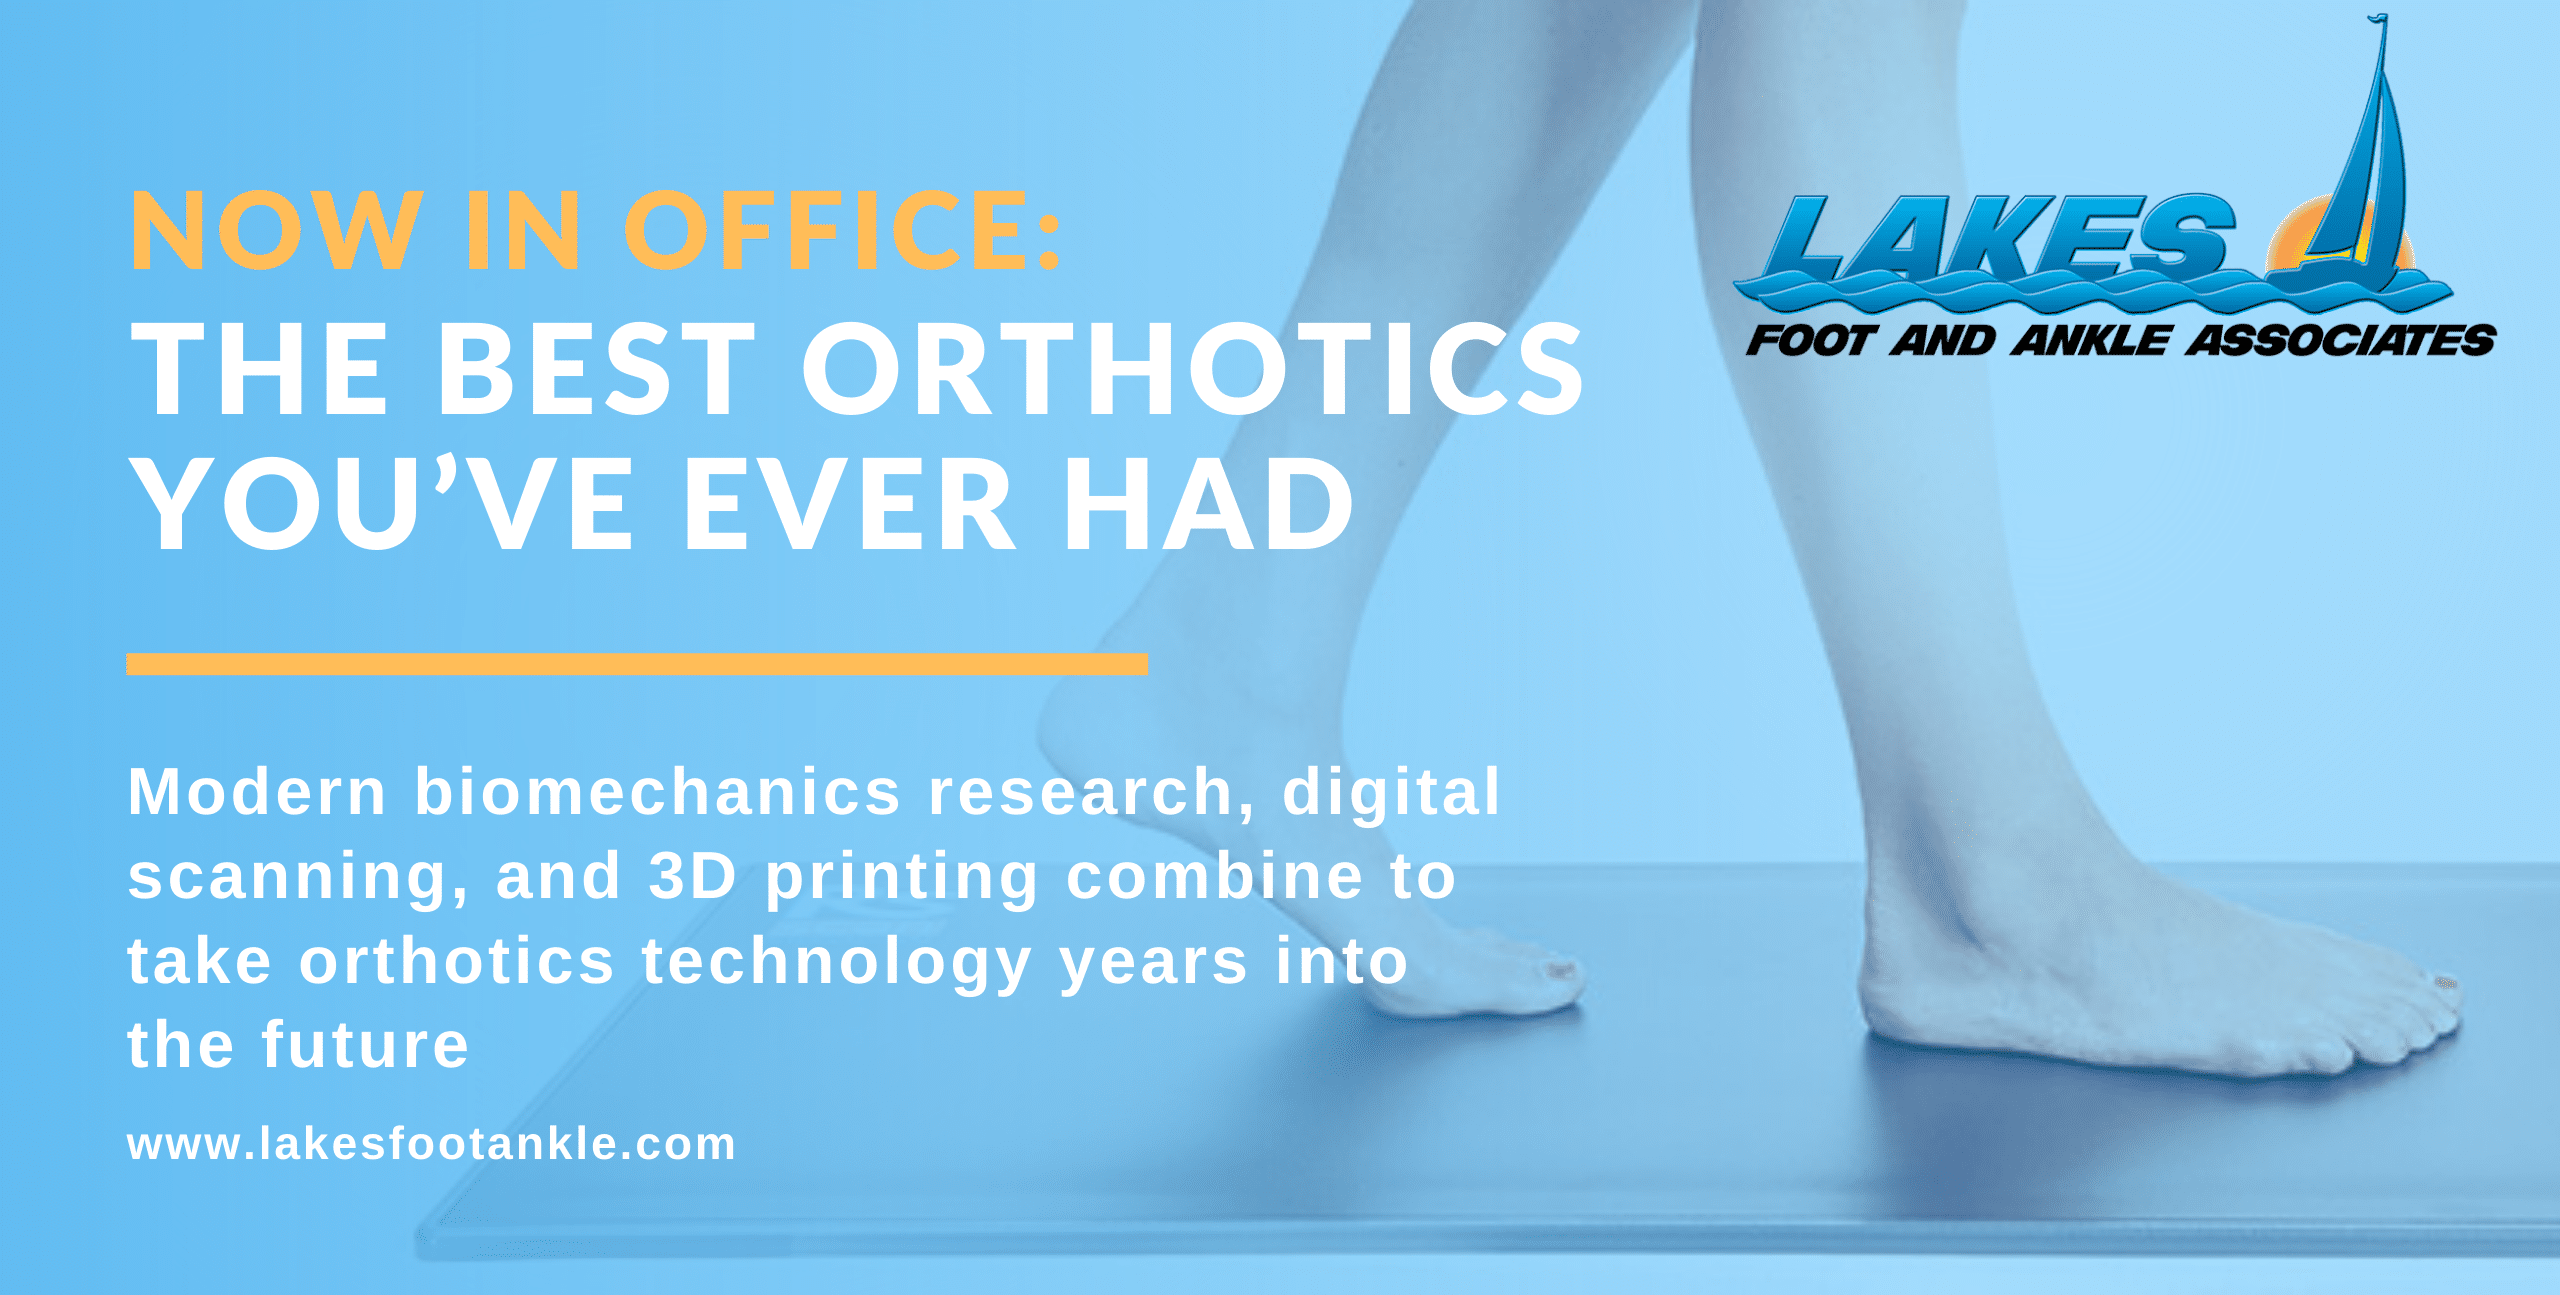 The Best Orthotics You've Ever Had